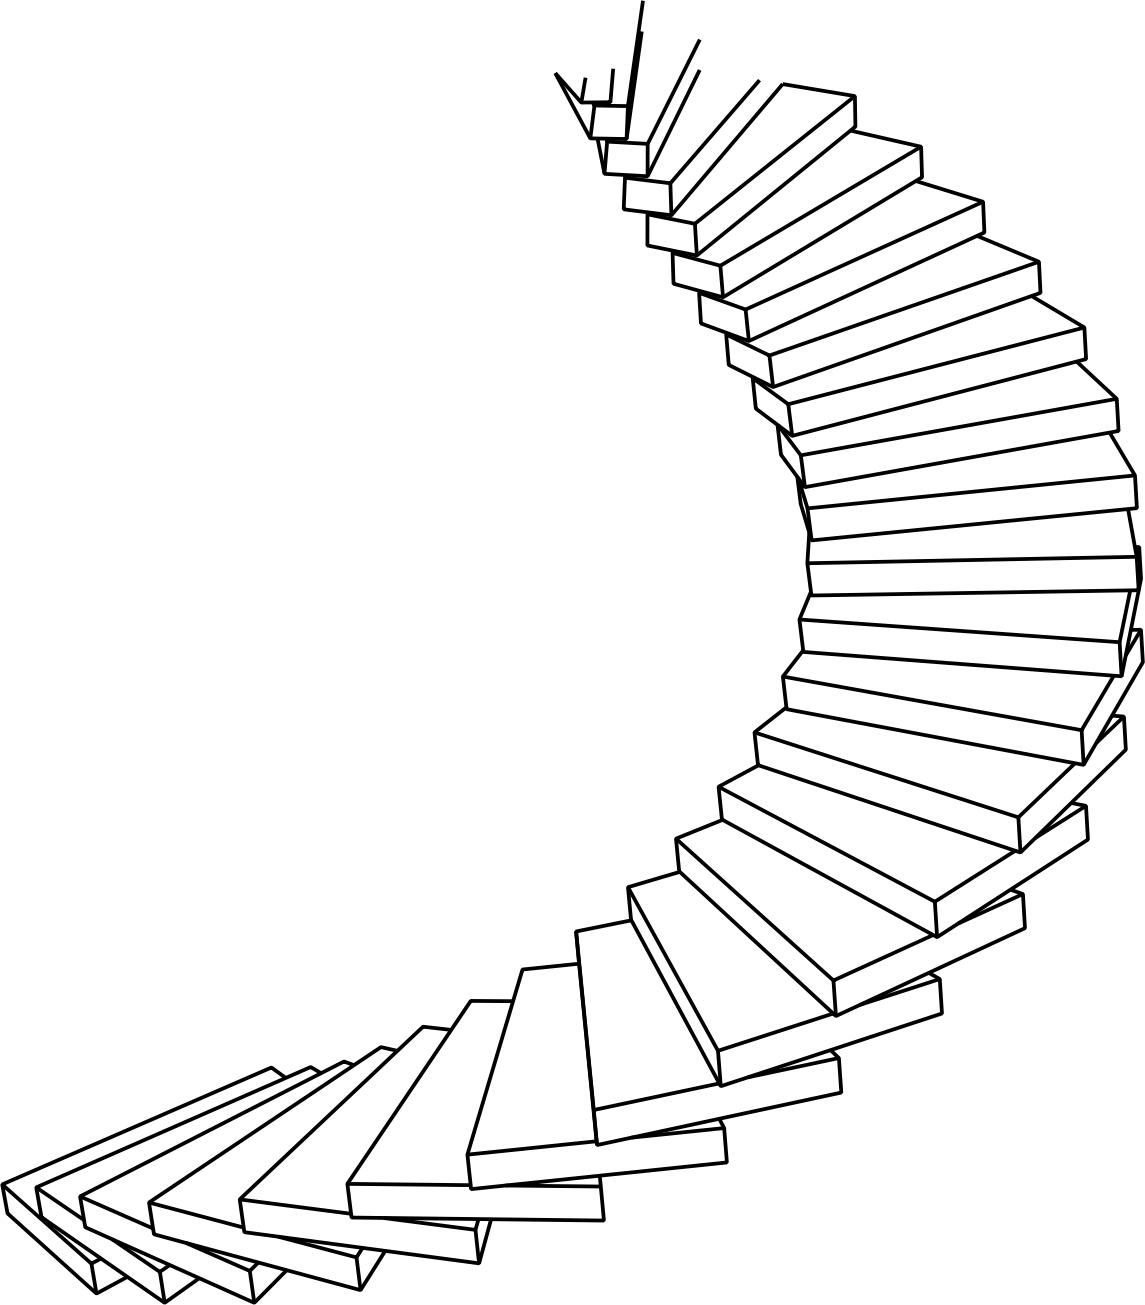 Ladder clipart line drawing, Ladder line drawing